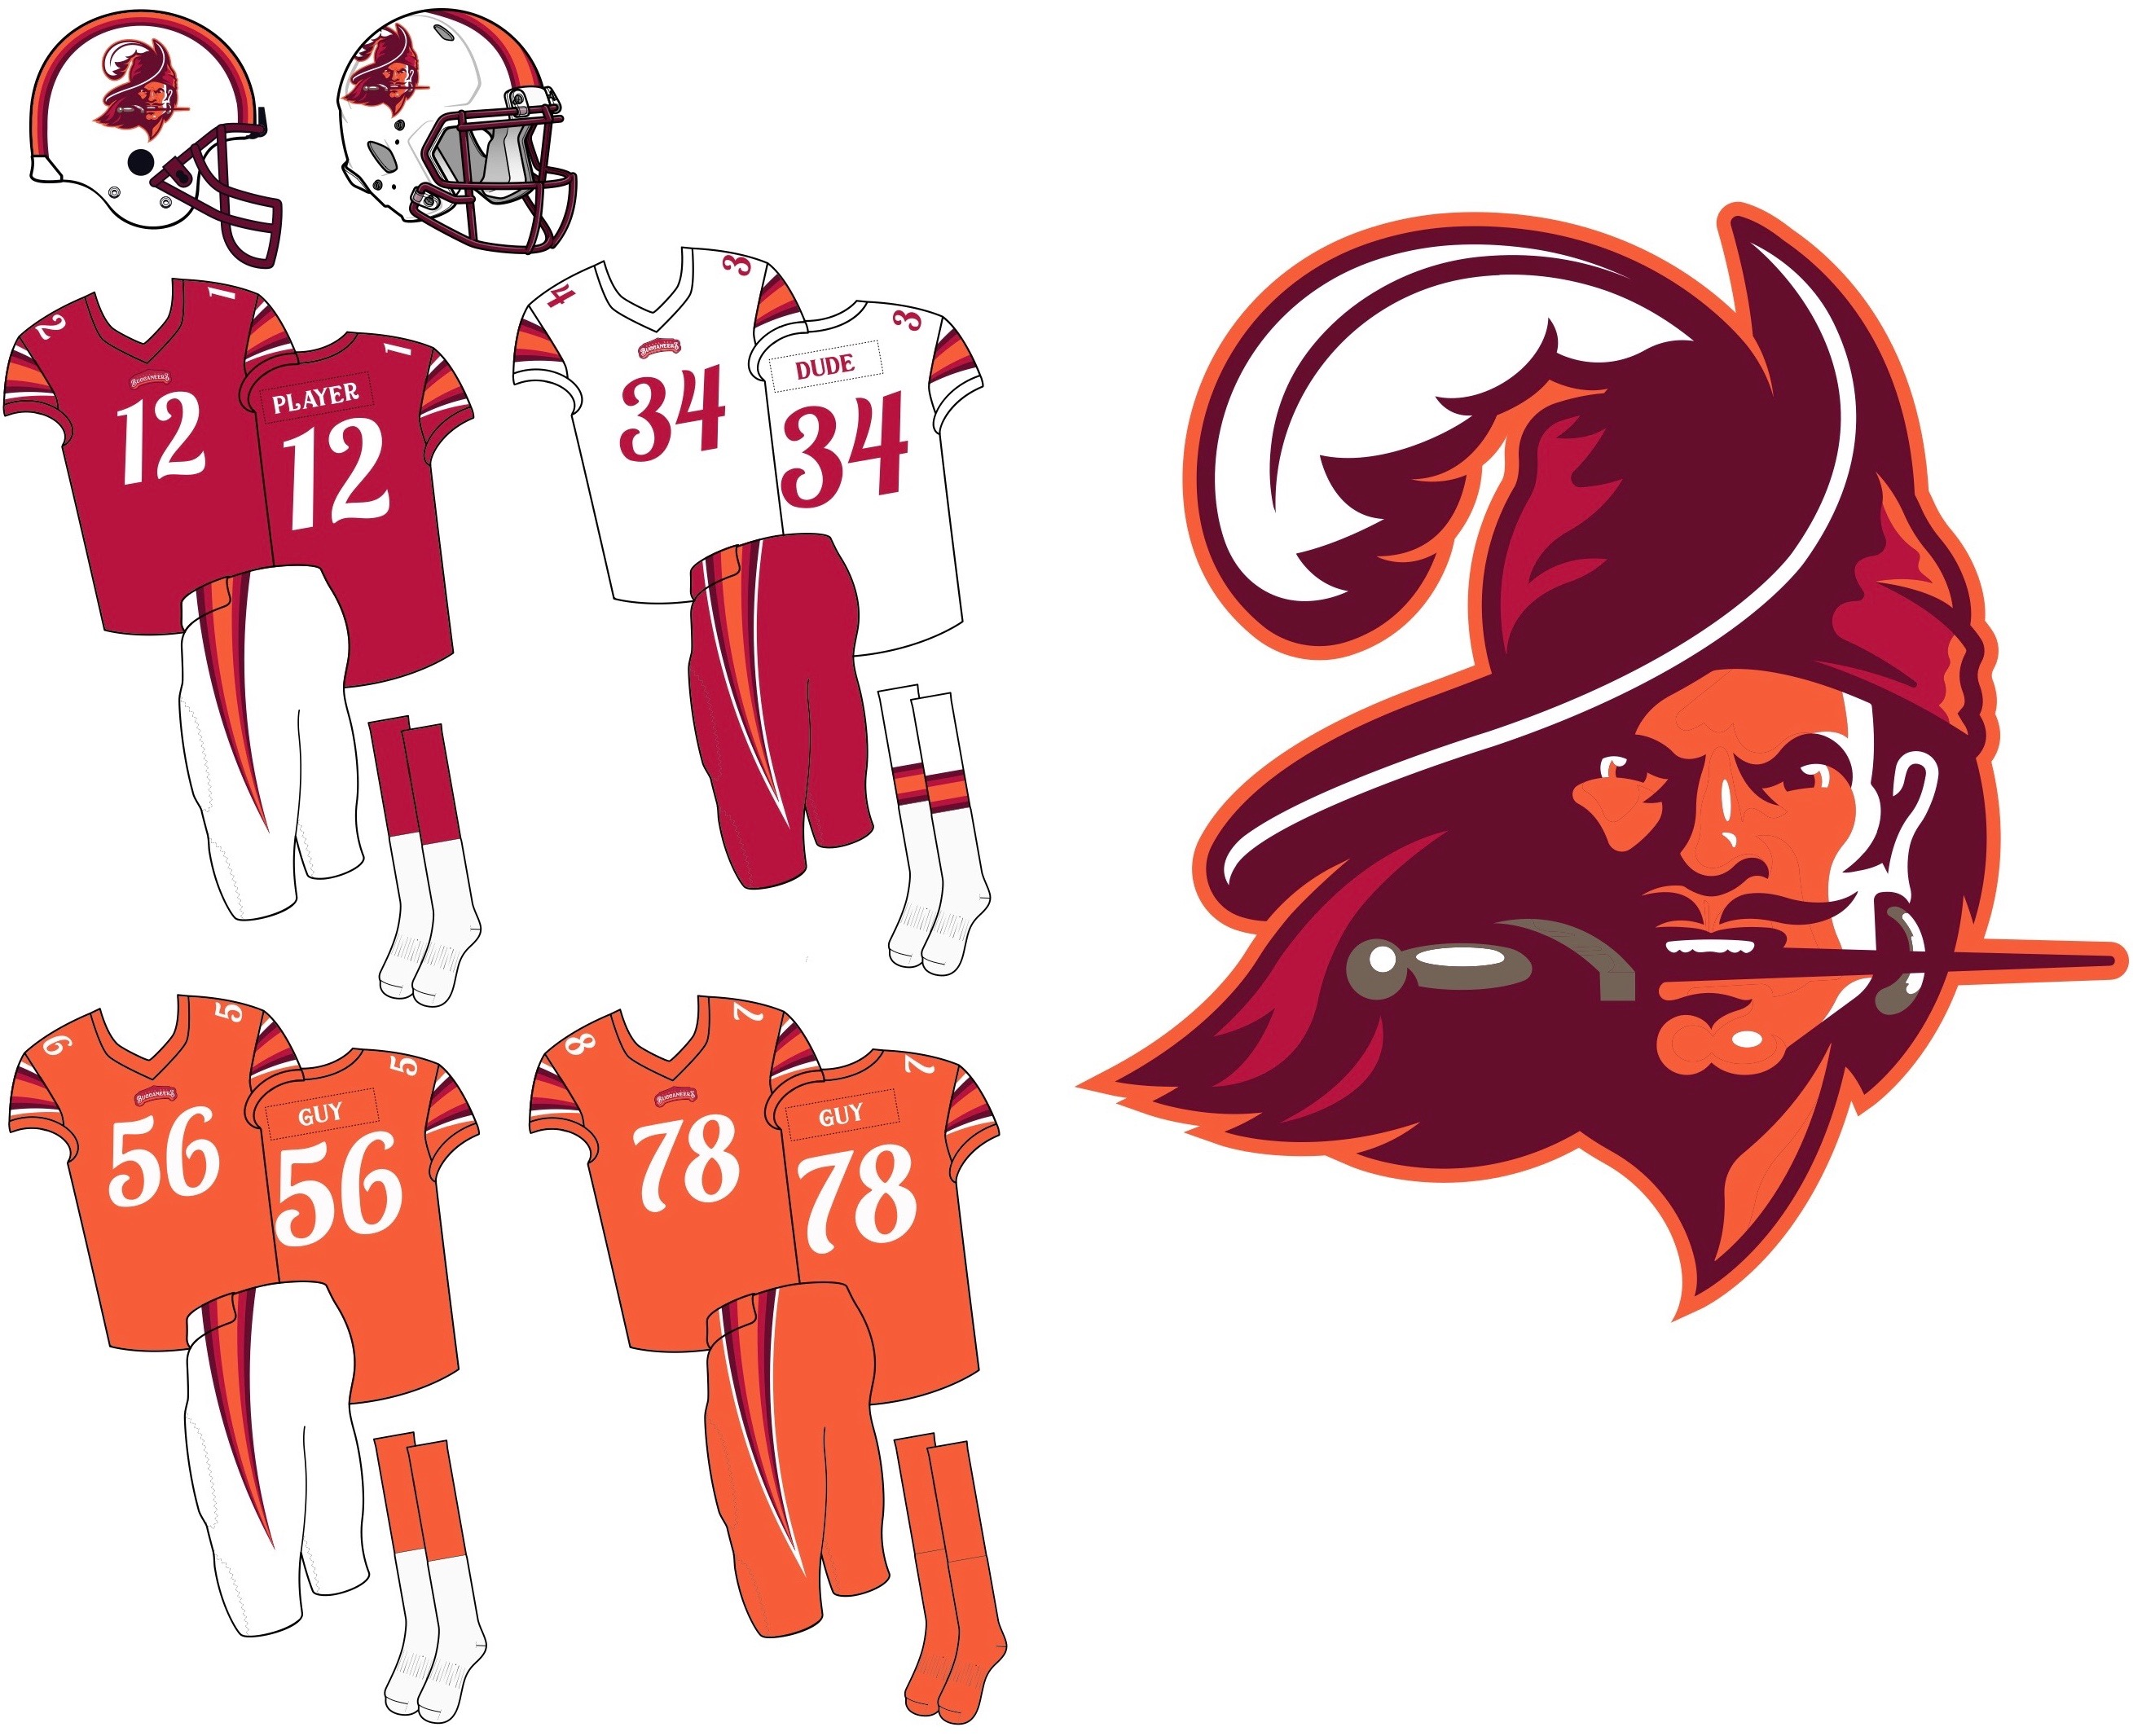 uniwatch tampa bay buccaneers redesign contest mccarthy